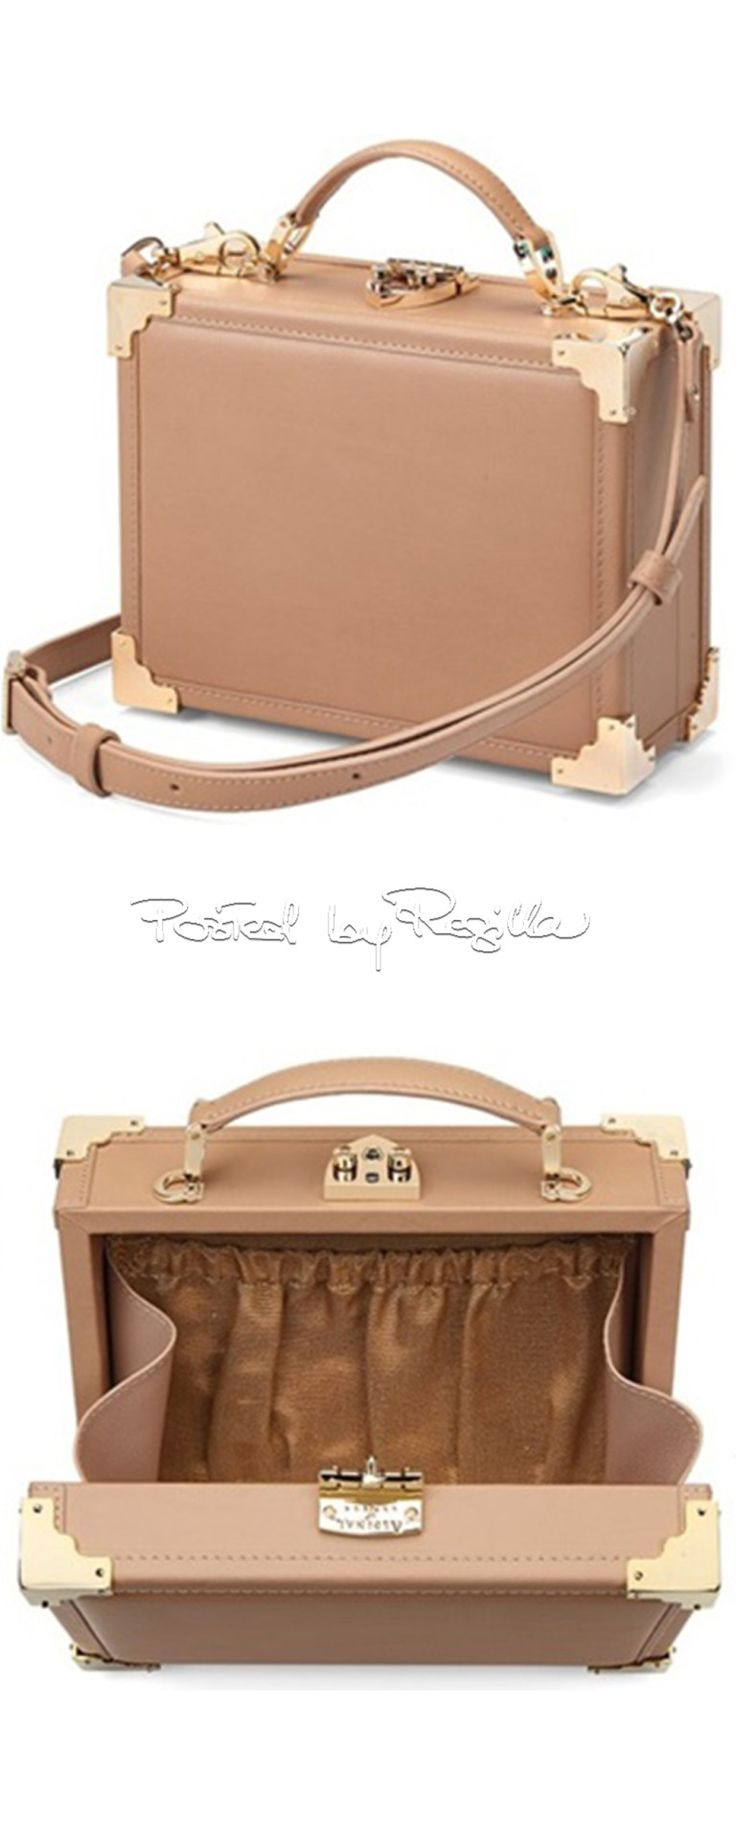 Regilla ⚜ Aspinal of London